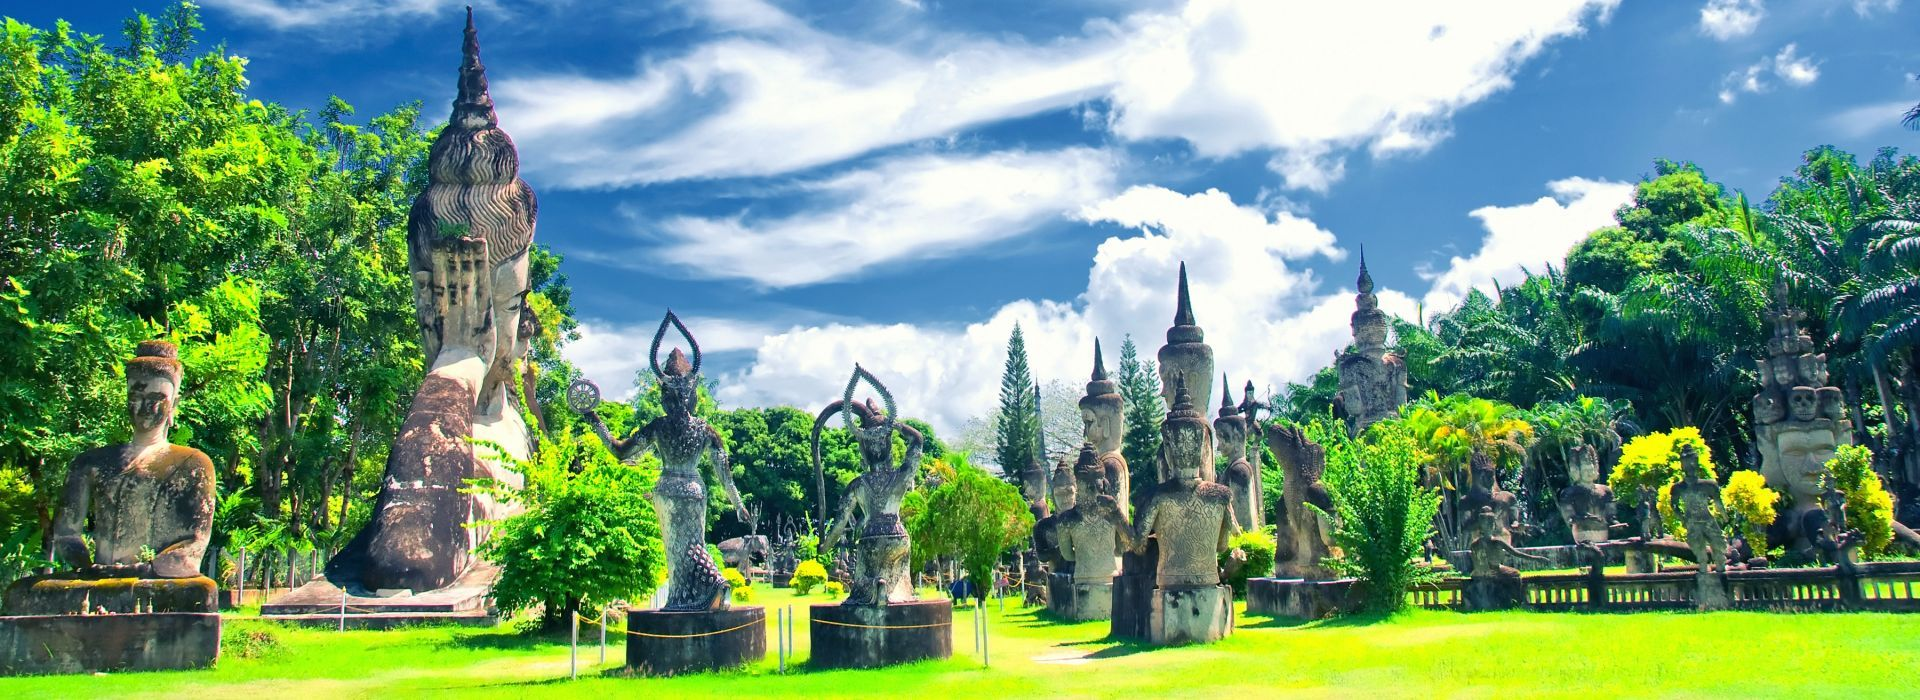 Special interests and hobbies Tours in Vientiane